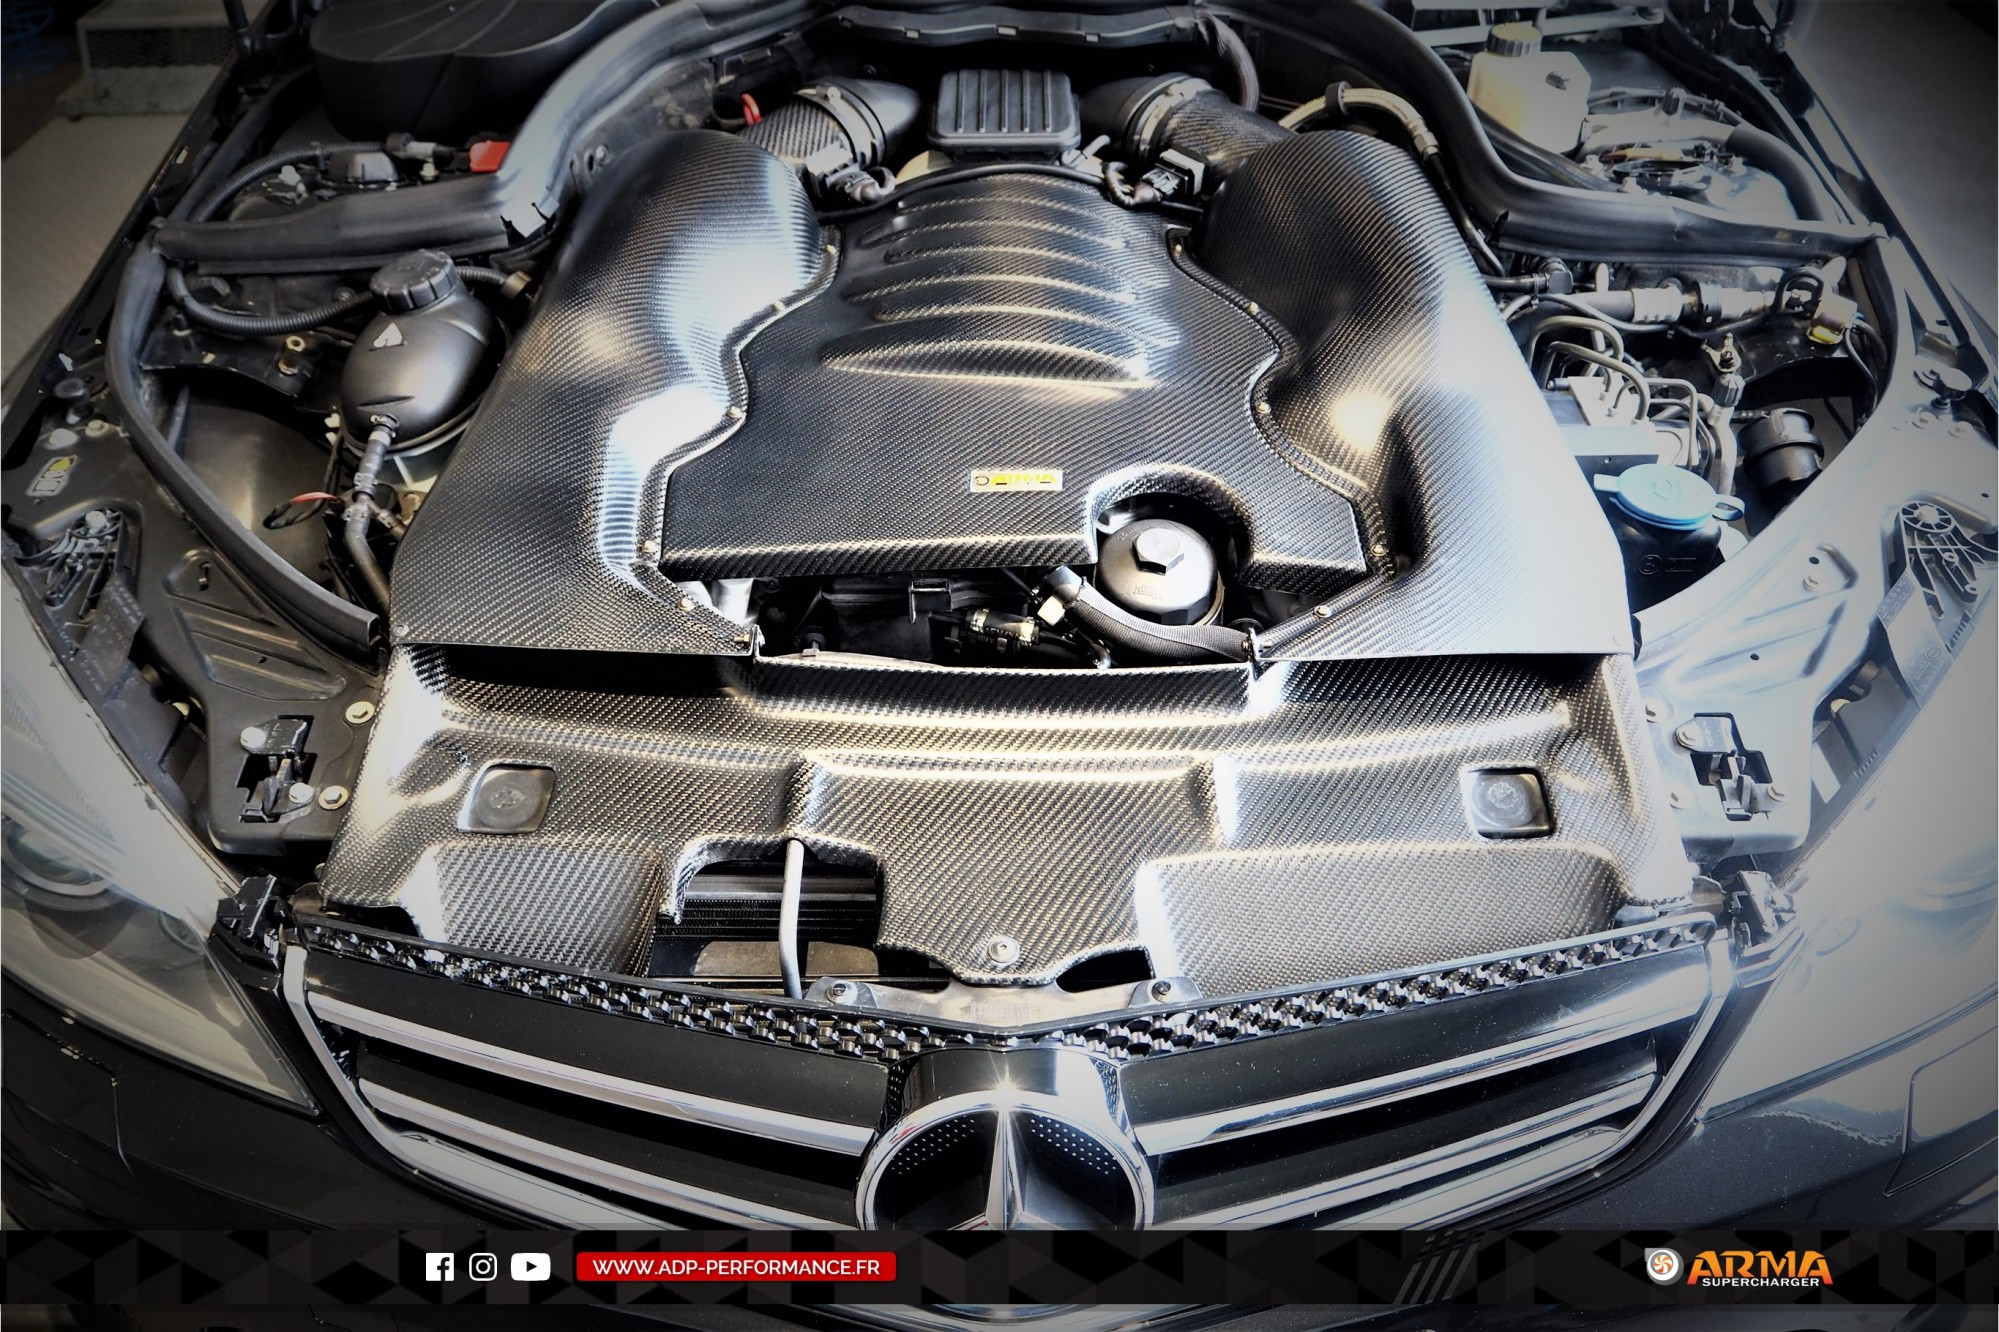 Admission ARMA Speed Salon de Provence - Mercedes C63 AMG - ADP Performance